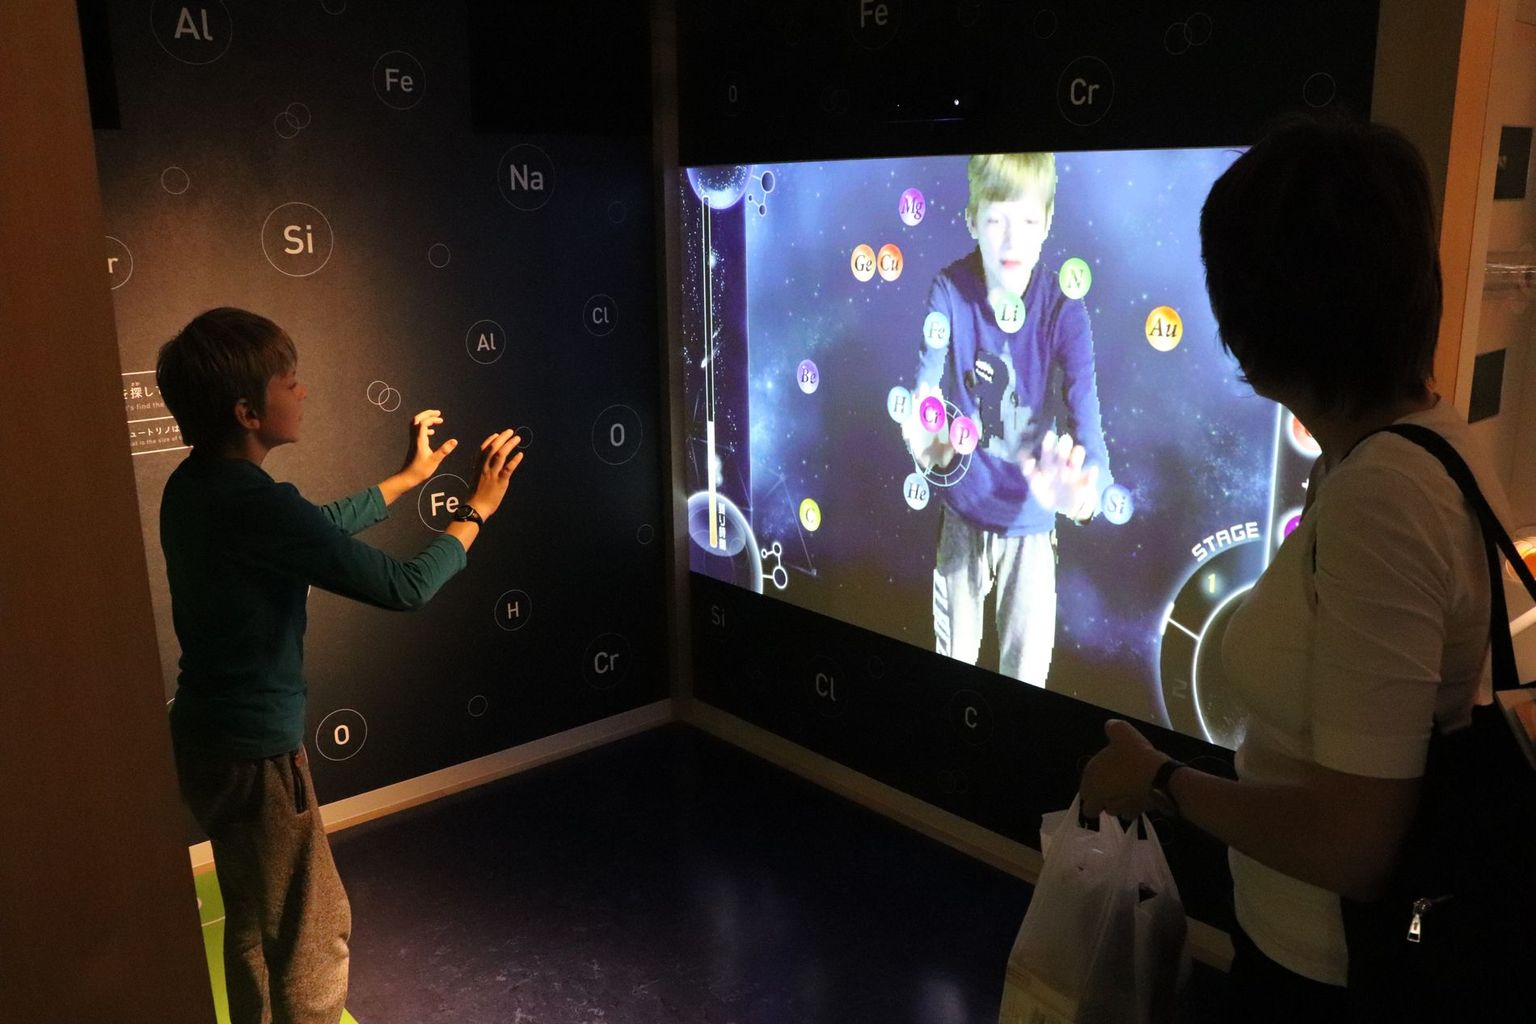 The KamiokaLab uses interactive exhibits to familiarise visitors with the contents of elementary particle physics. Photo: B. Vogel